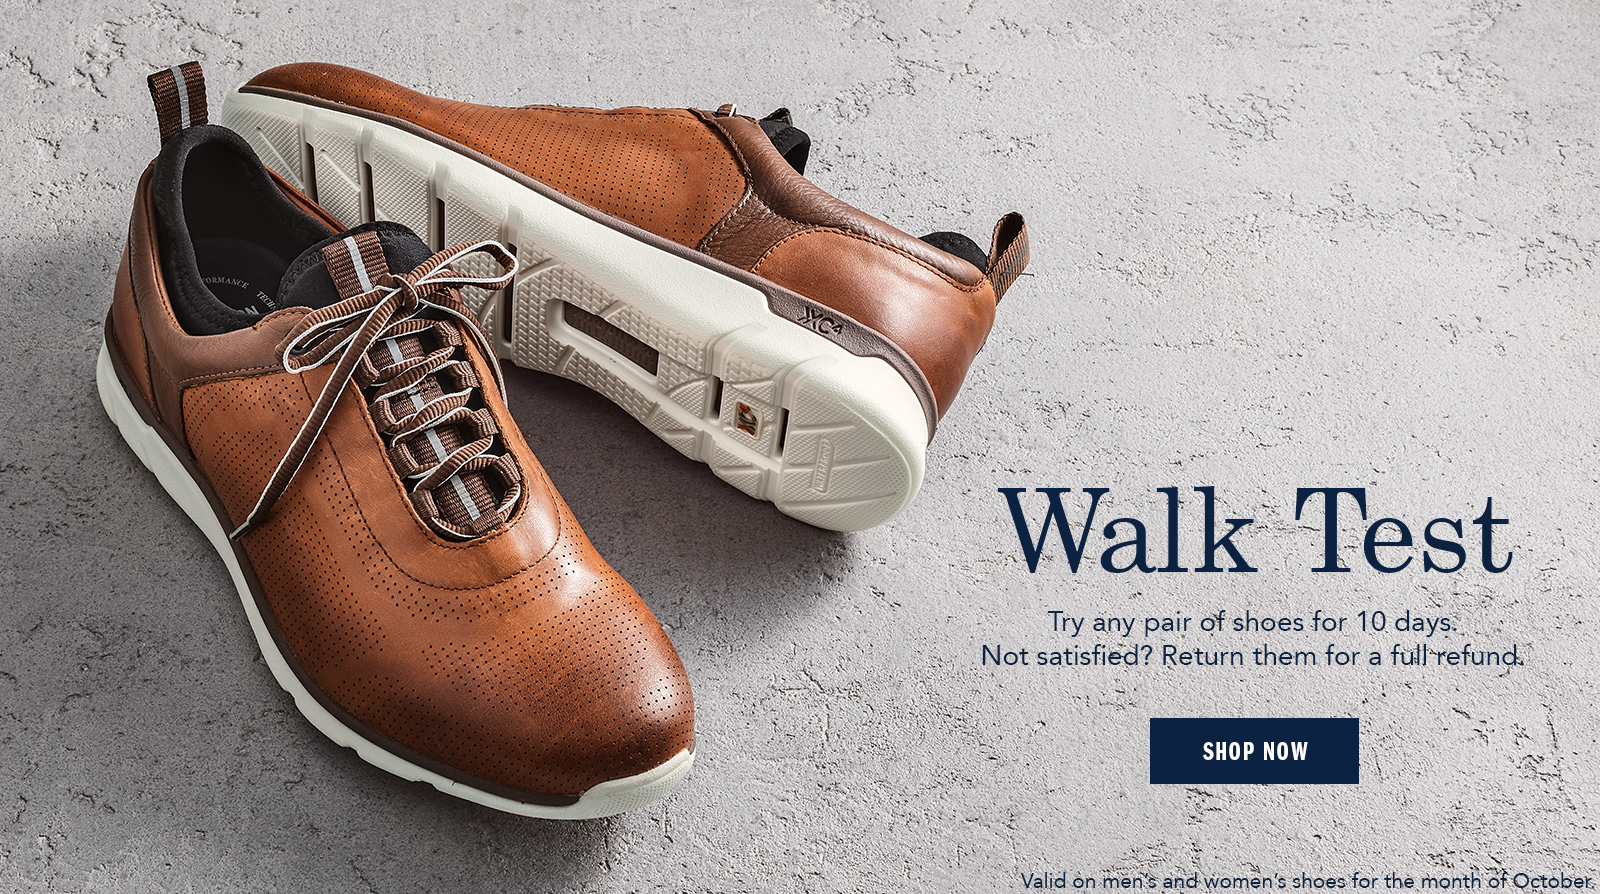 Walk Test - Shop Men's Shoes